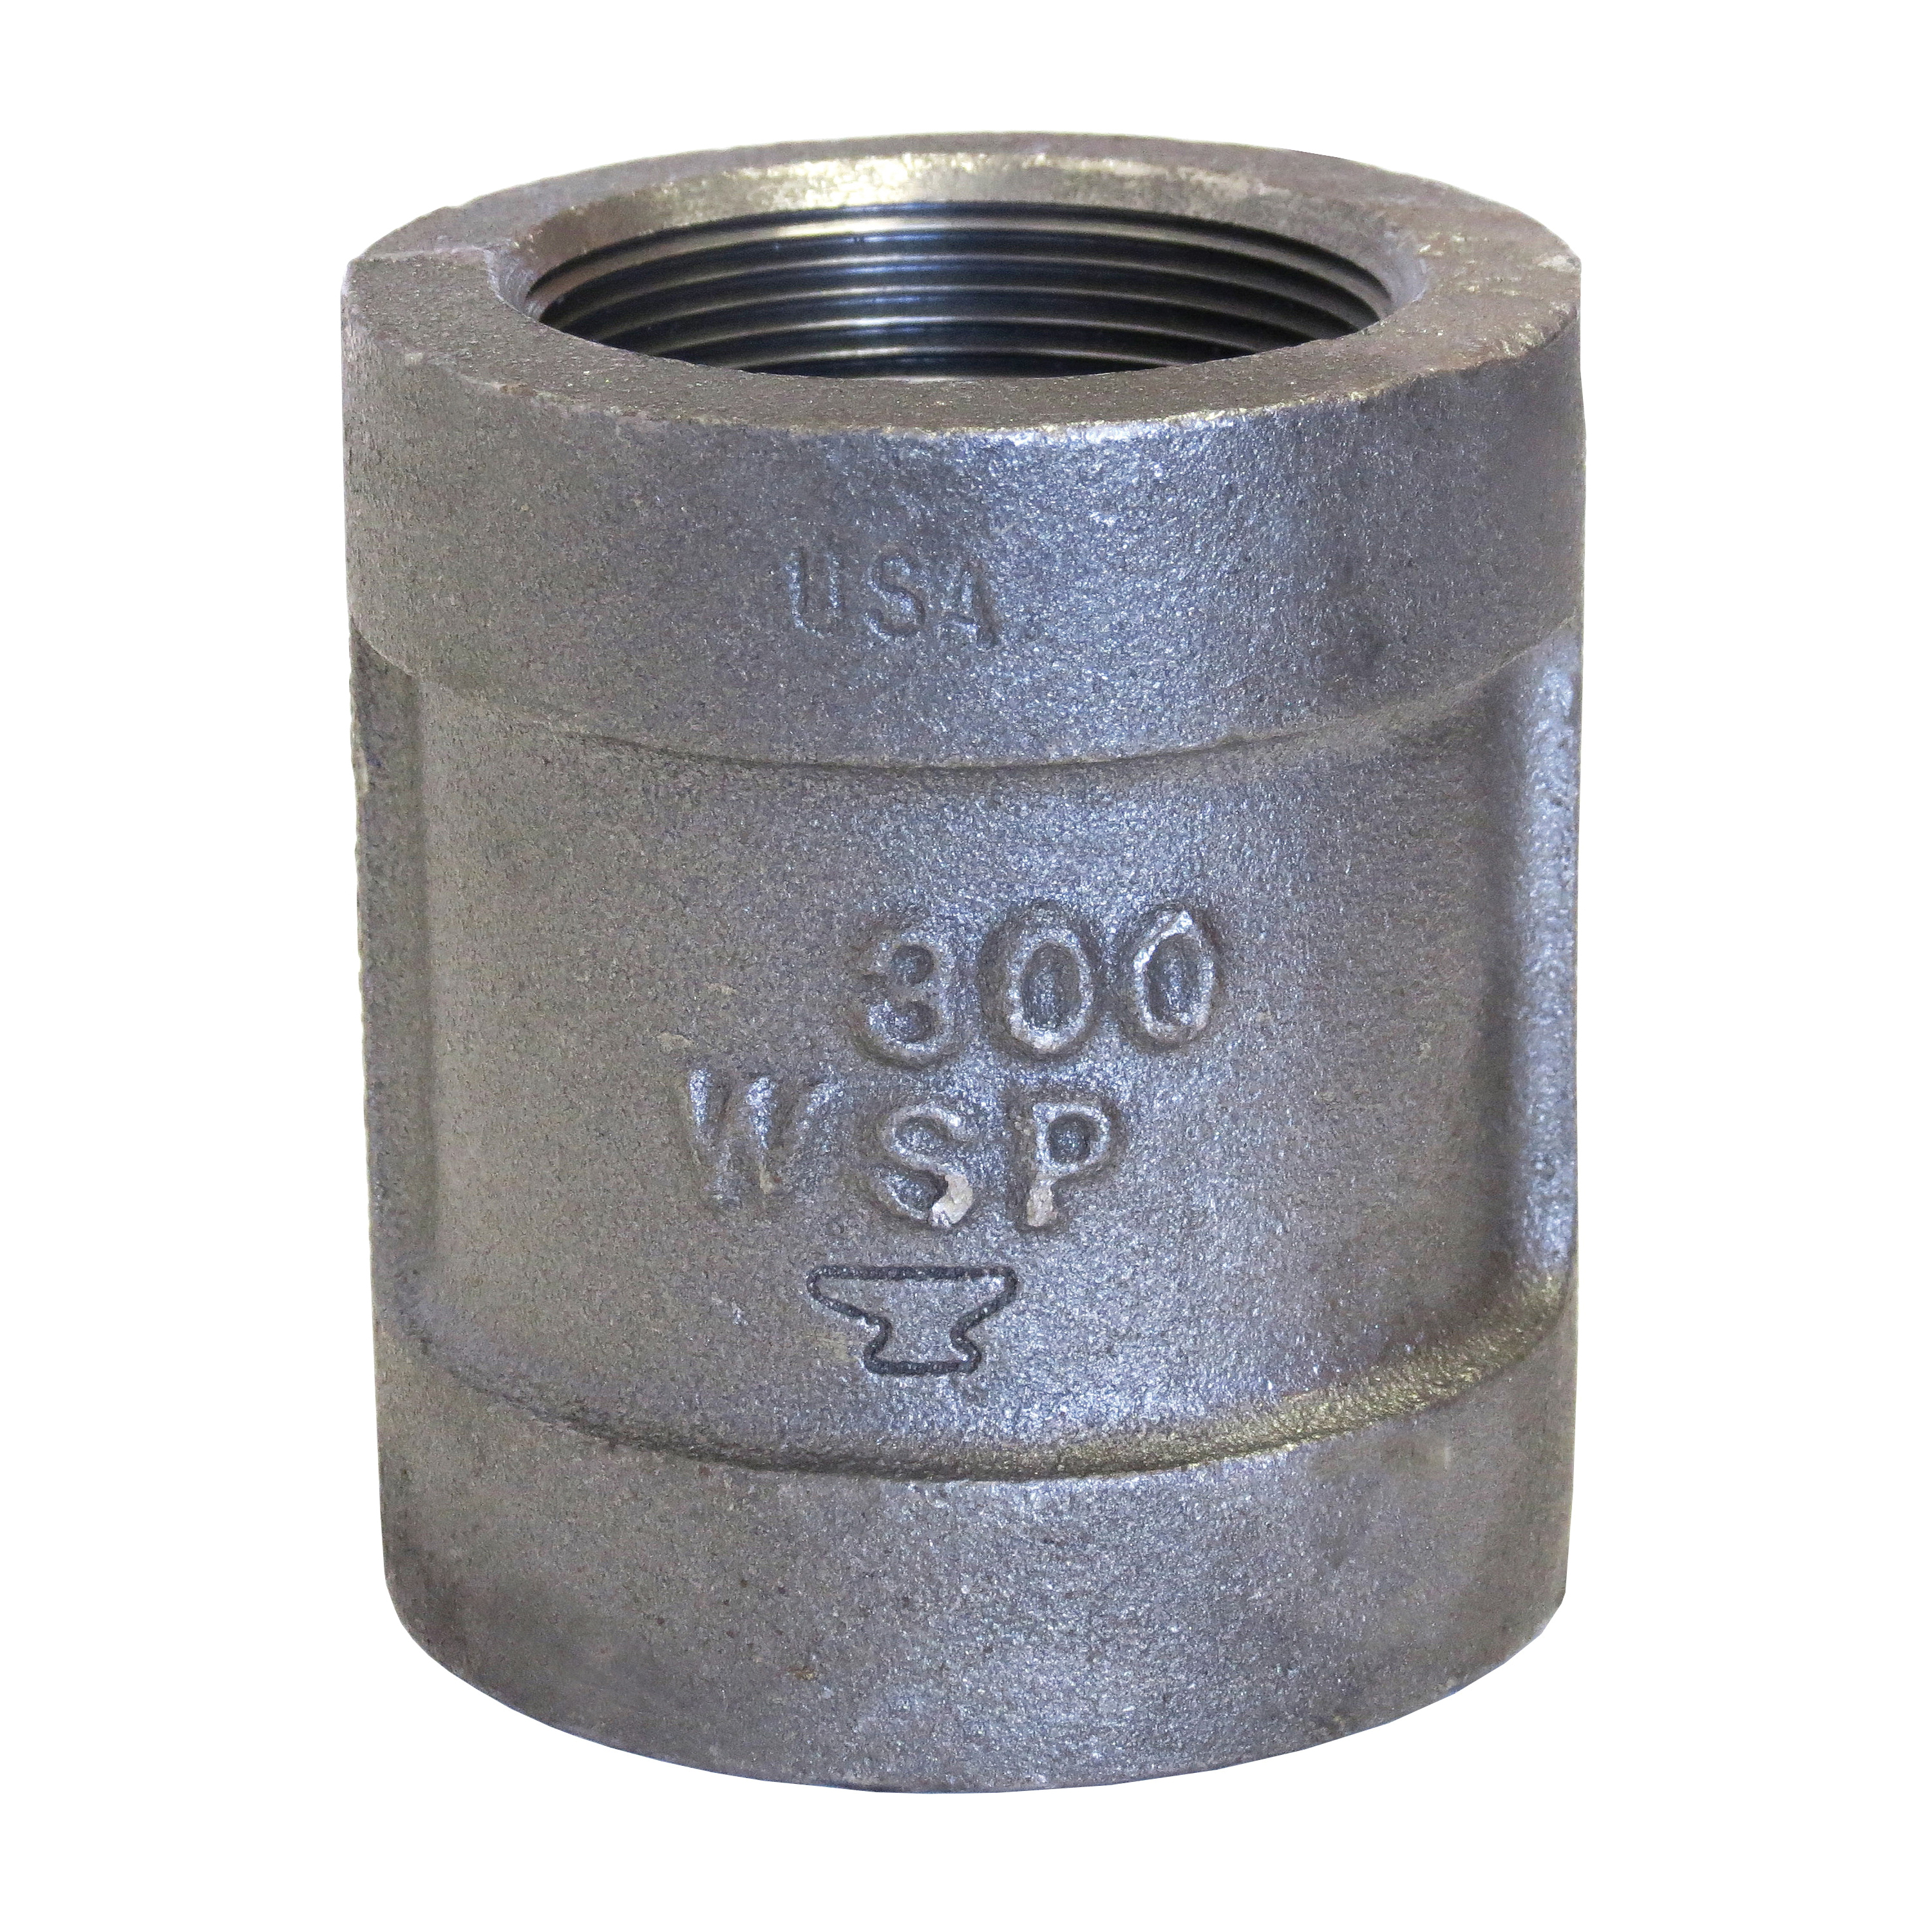 Anvil® 0311539605 FIG 1166 Pipe Coupling, 2 in, FNPT, 300 lb, Malleable Iron, Galvanized, Domestic